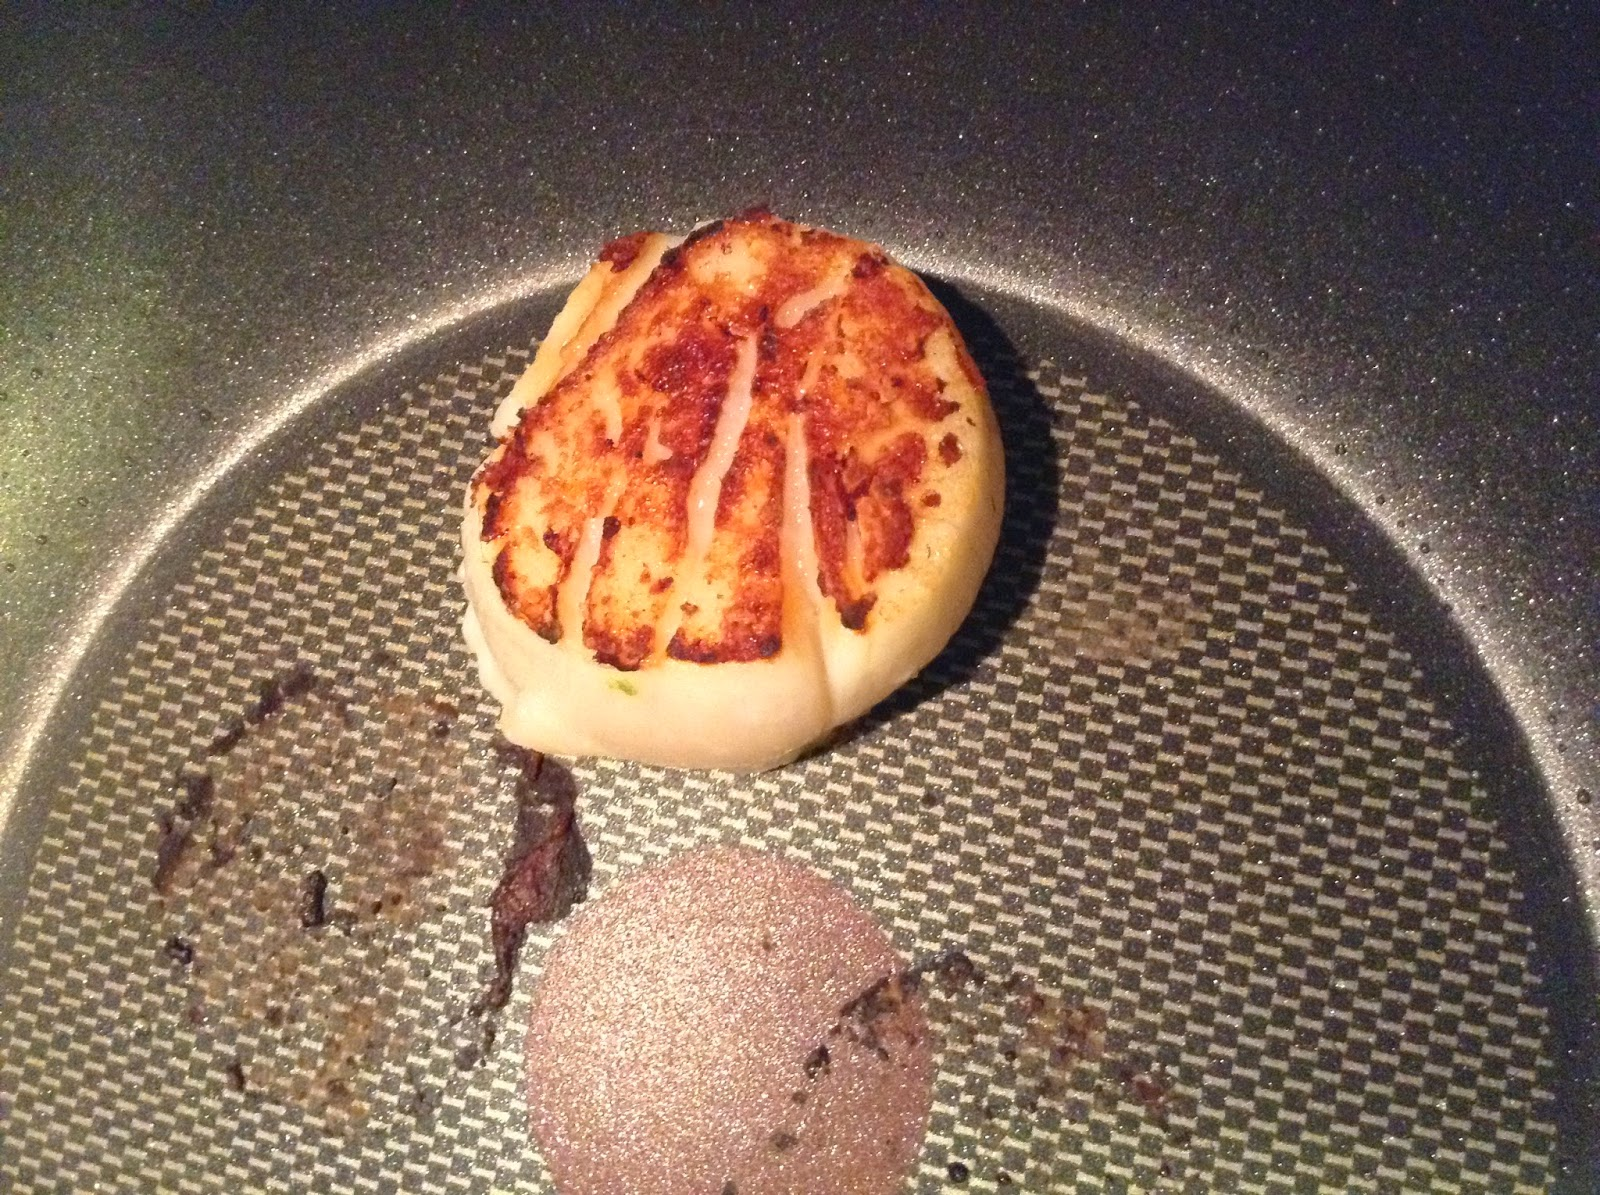 A seared scallop in a pan